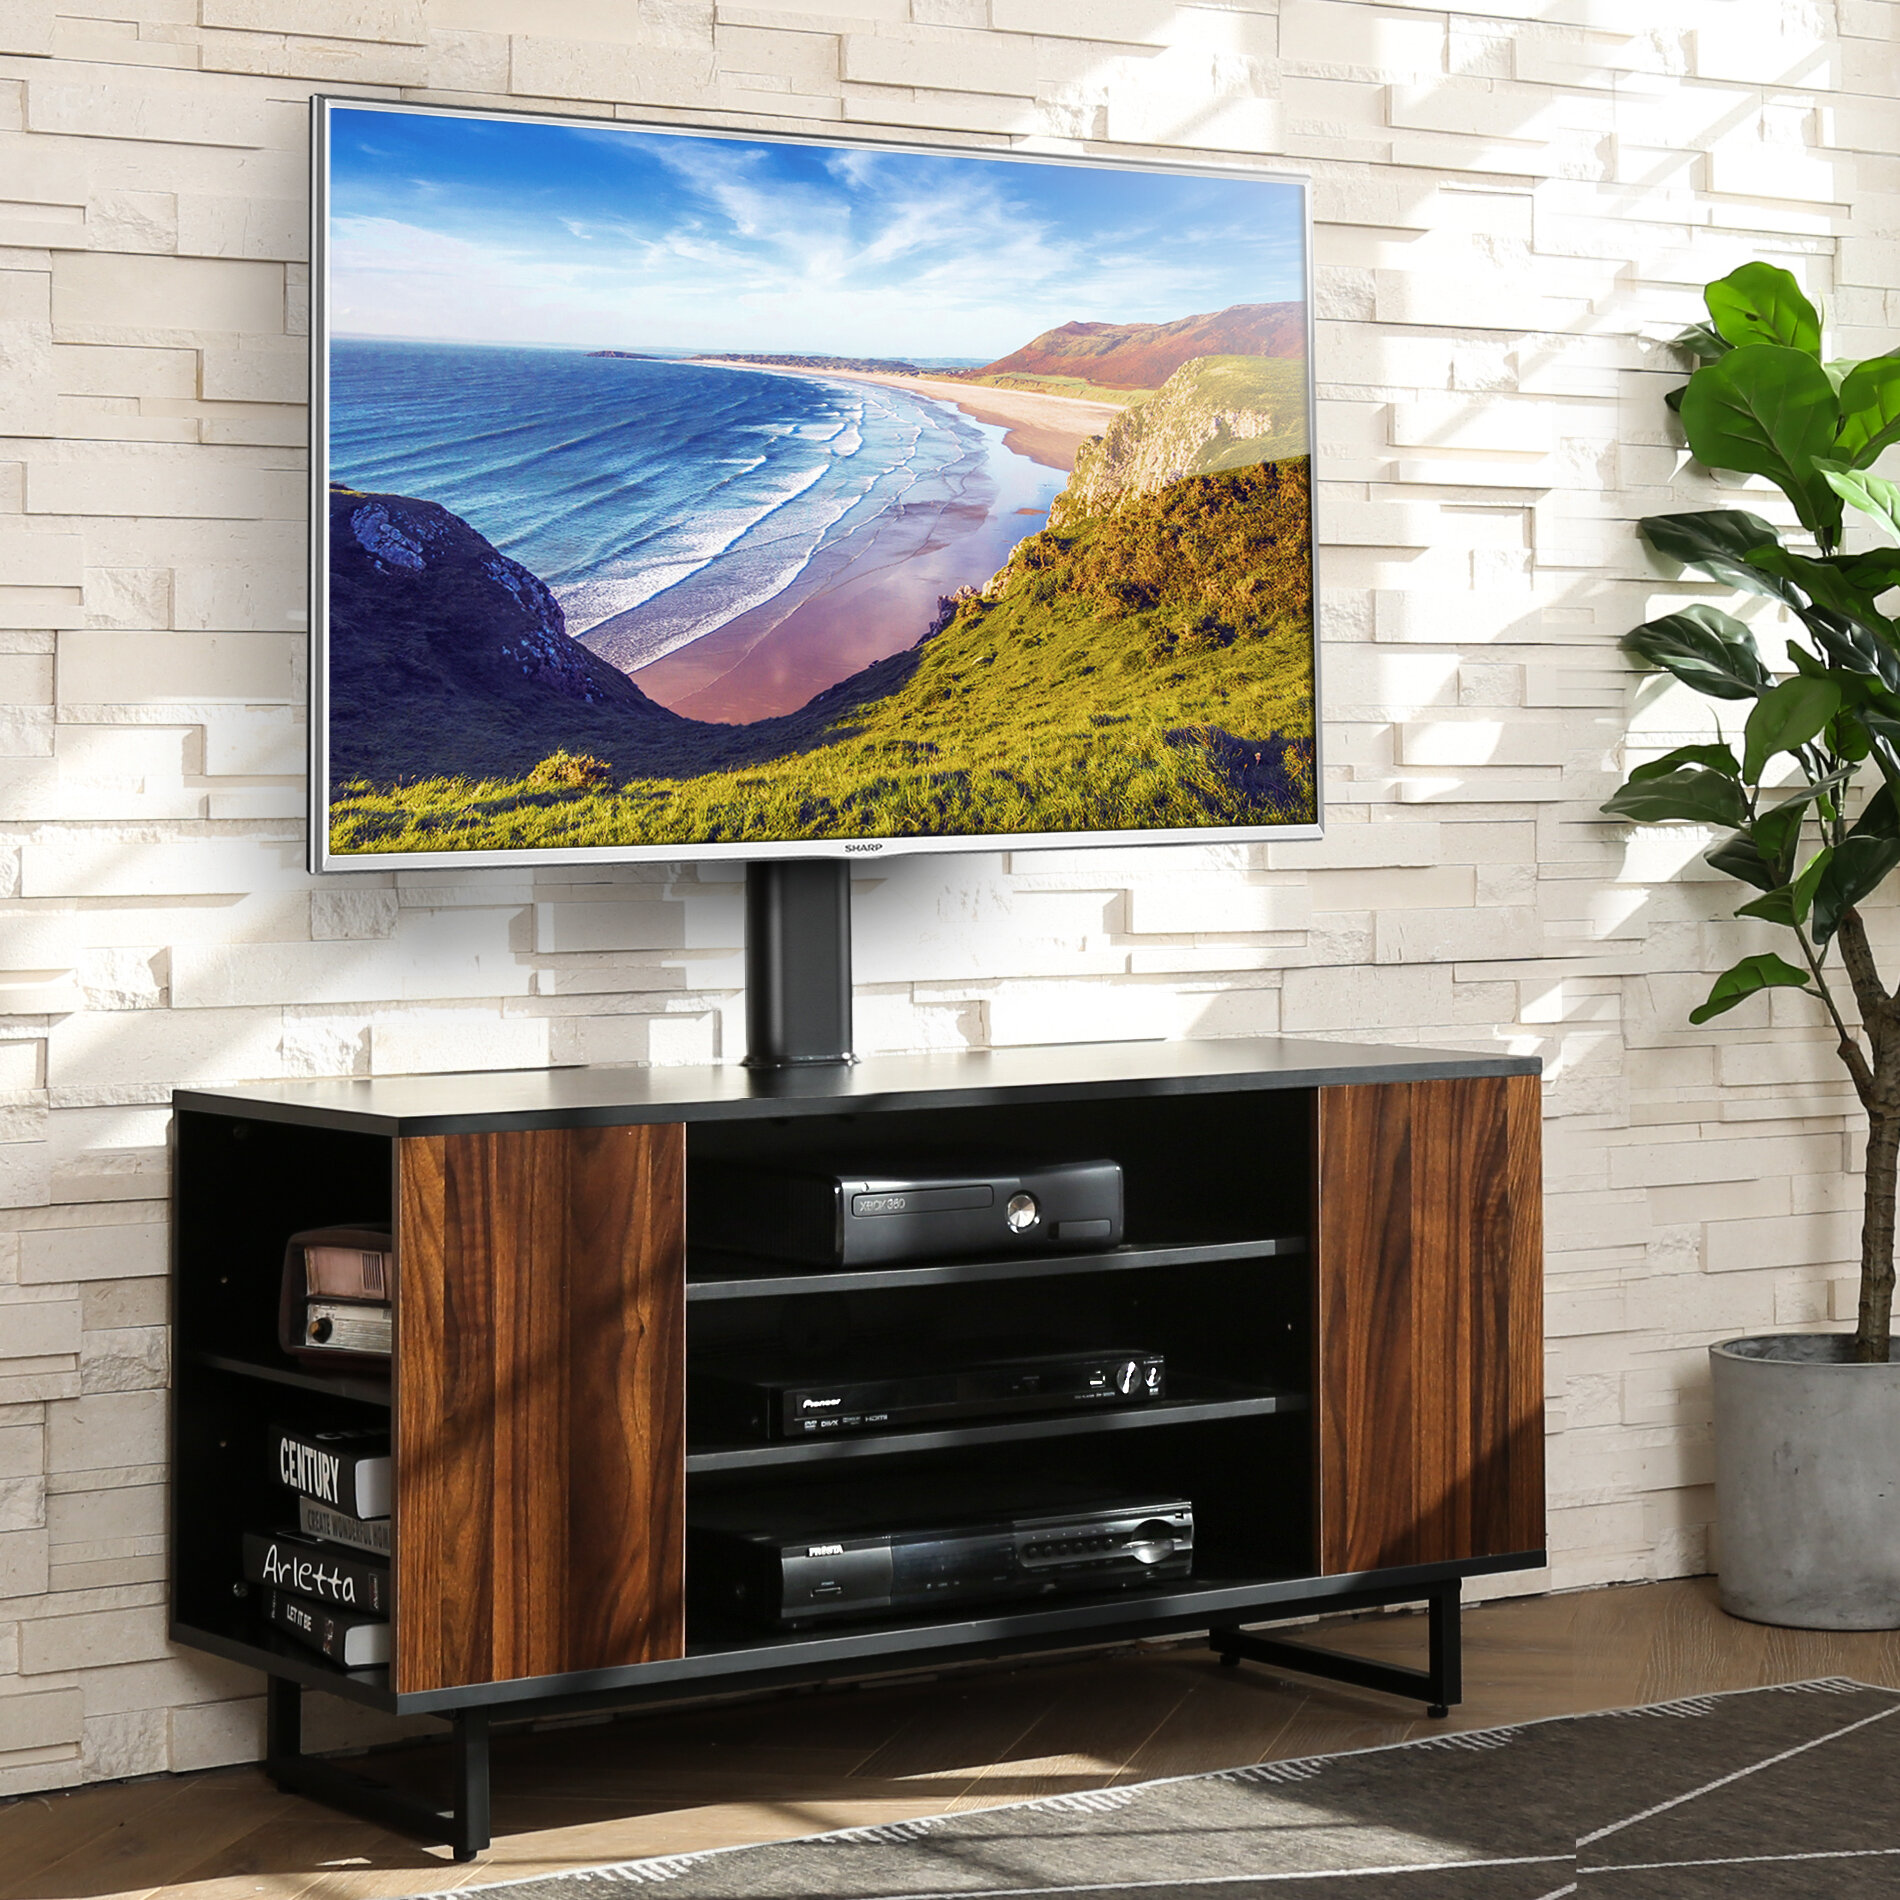 FITUEYES Floor TV Stand with Wood Base /& 3-Tier Shelf for 32 to 65 inch LCD LED OLED Plasma Flat Panel or Curved Screen Hold up to 88 lbs